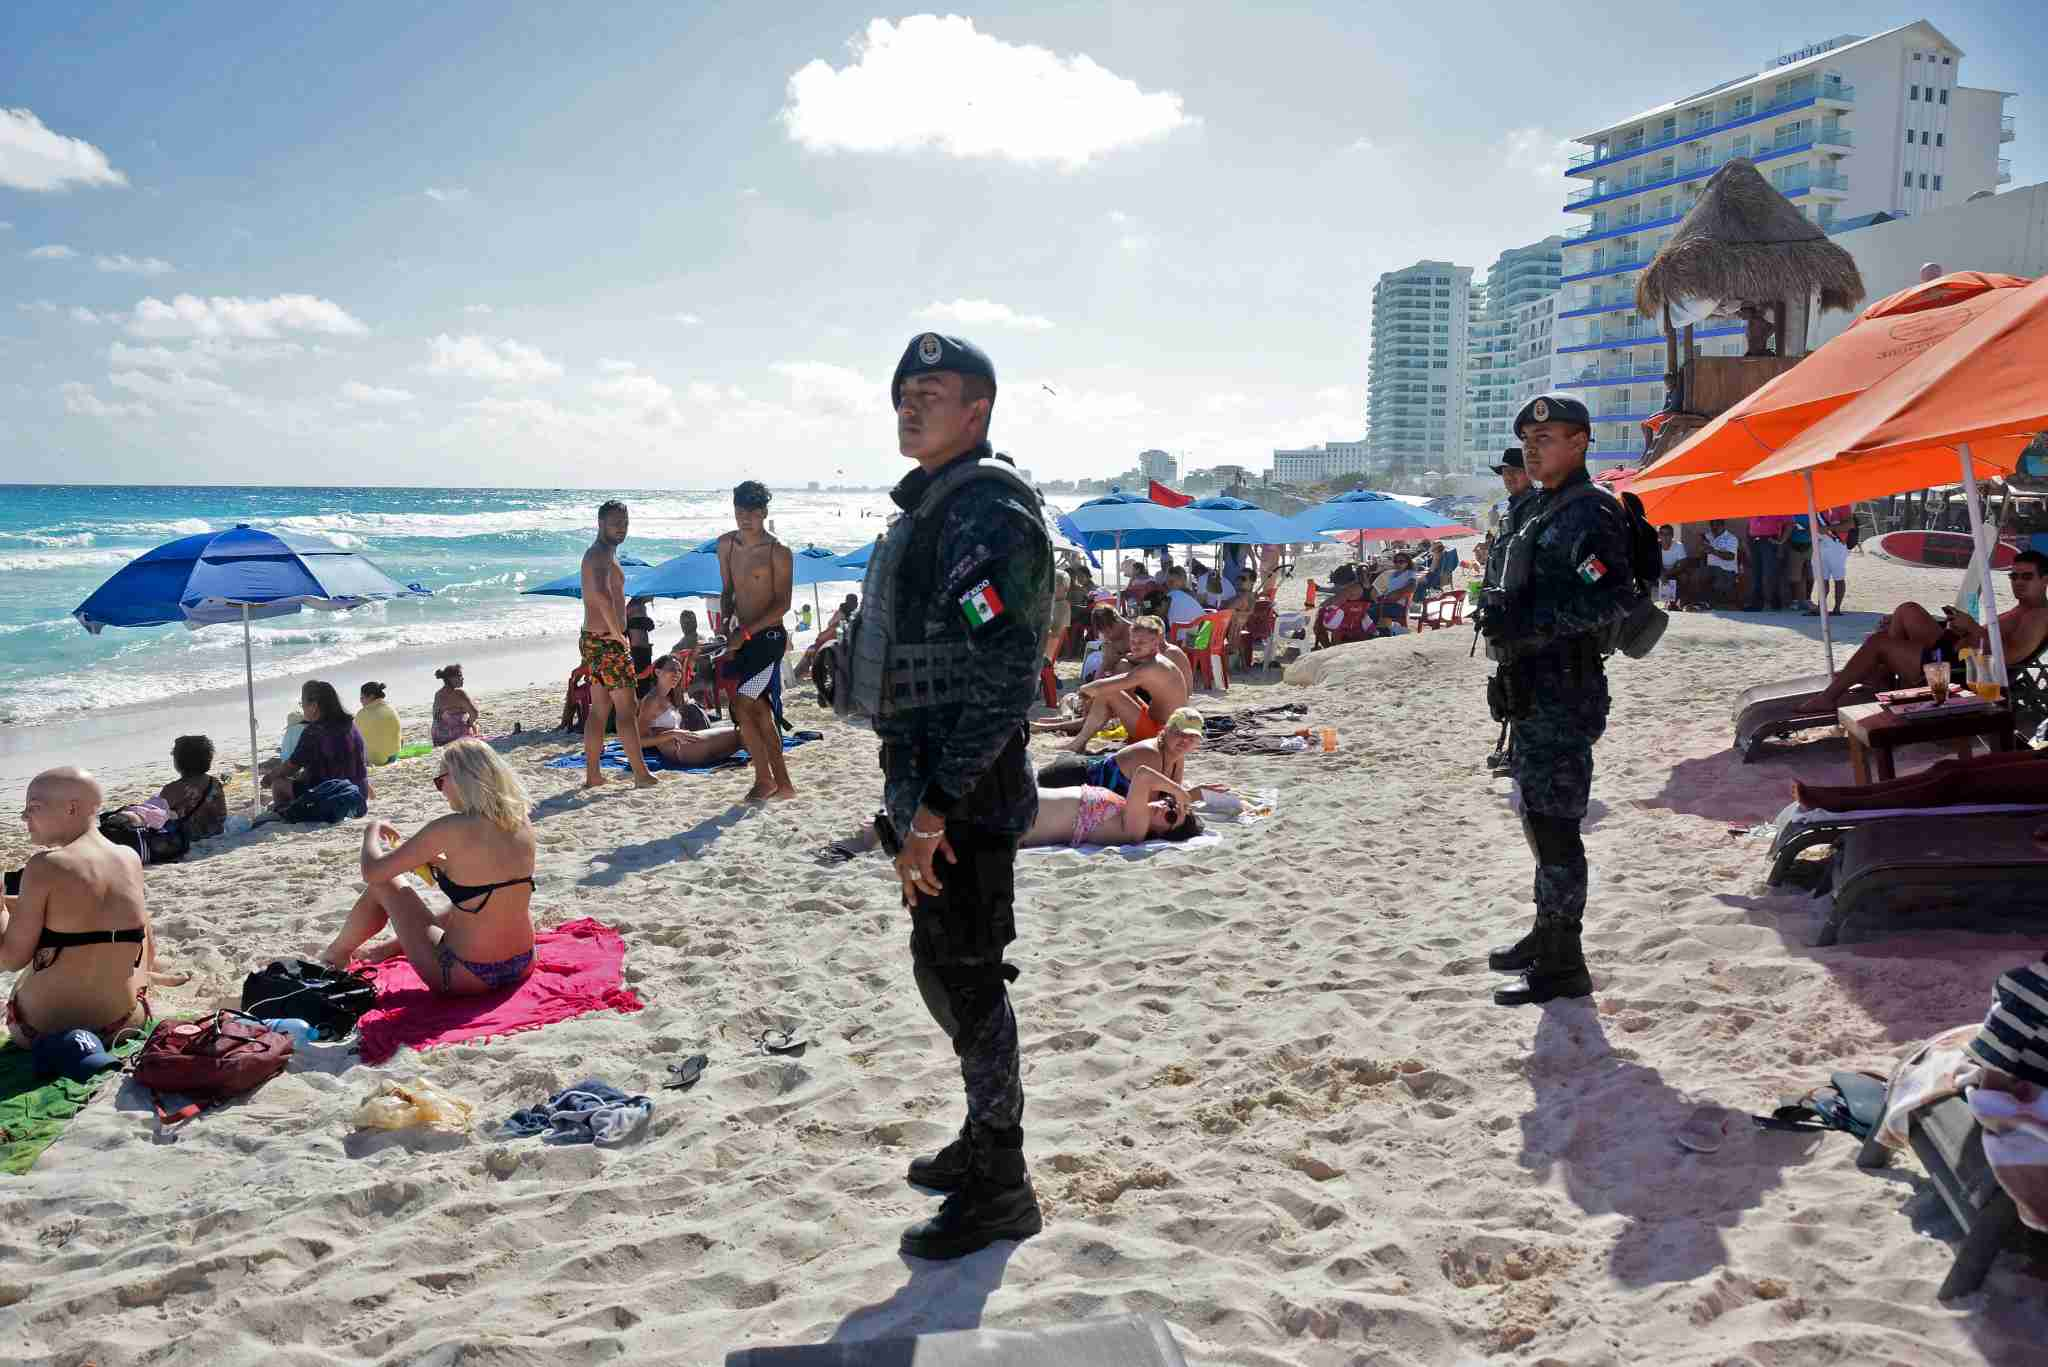 The Mexican federal police patrol a beach in Cancun, Mexico on January 18, 2017, where a shooting occurred in a nightclub the day before. The shooting happened on January 17, as Mexican authorities investigate whether a feud over local drug sales was behind a nightclub shooting that killed three foreigners and two Mexicans Monday at the Blue Parrot club during the BPM electronic music festival in Playa del Carmen, a usually peaceful Caribbean seaside town. / AFP / STR (Photo credit should read STR/AFP/Getty Images)